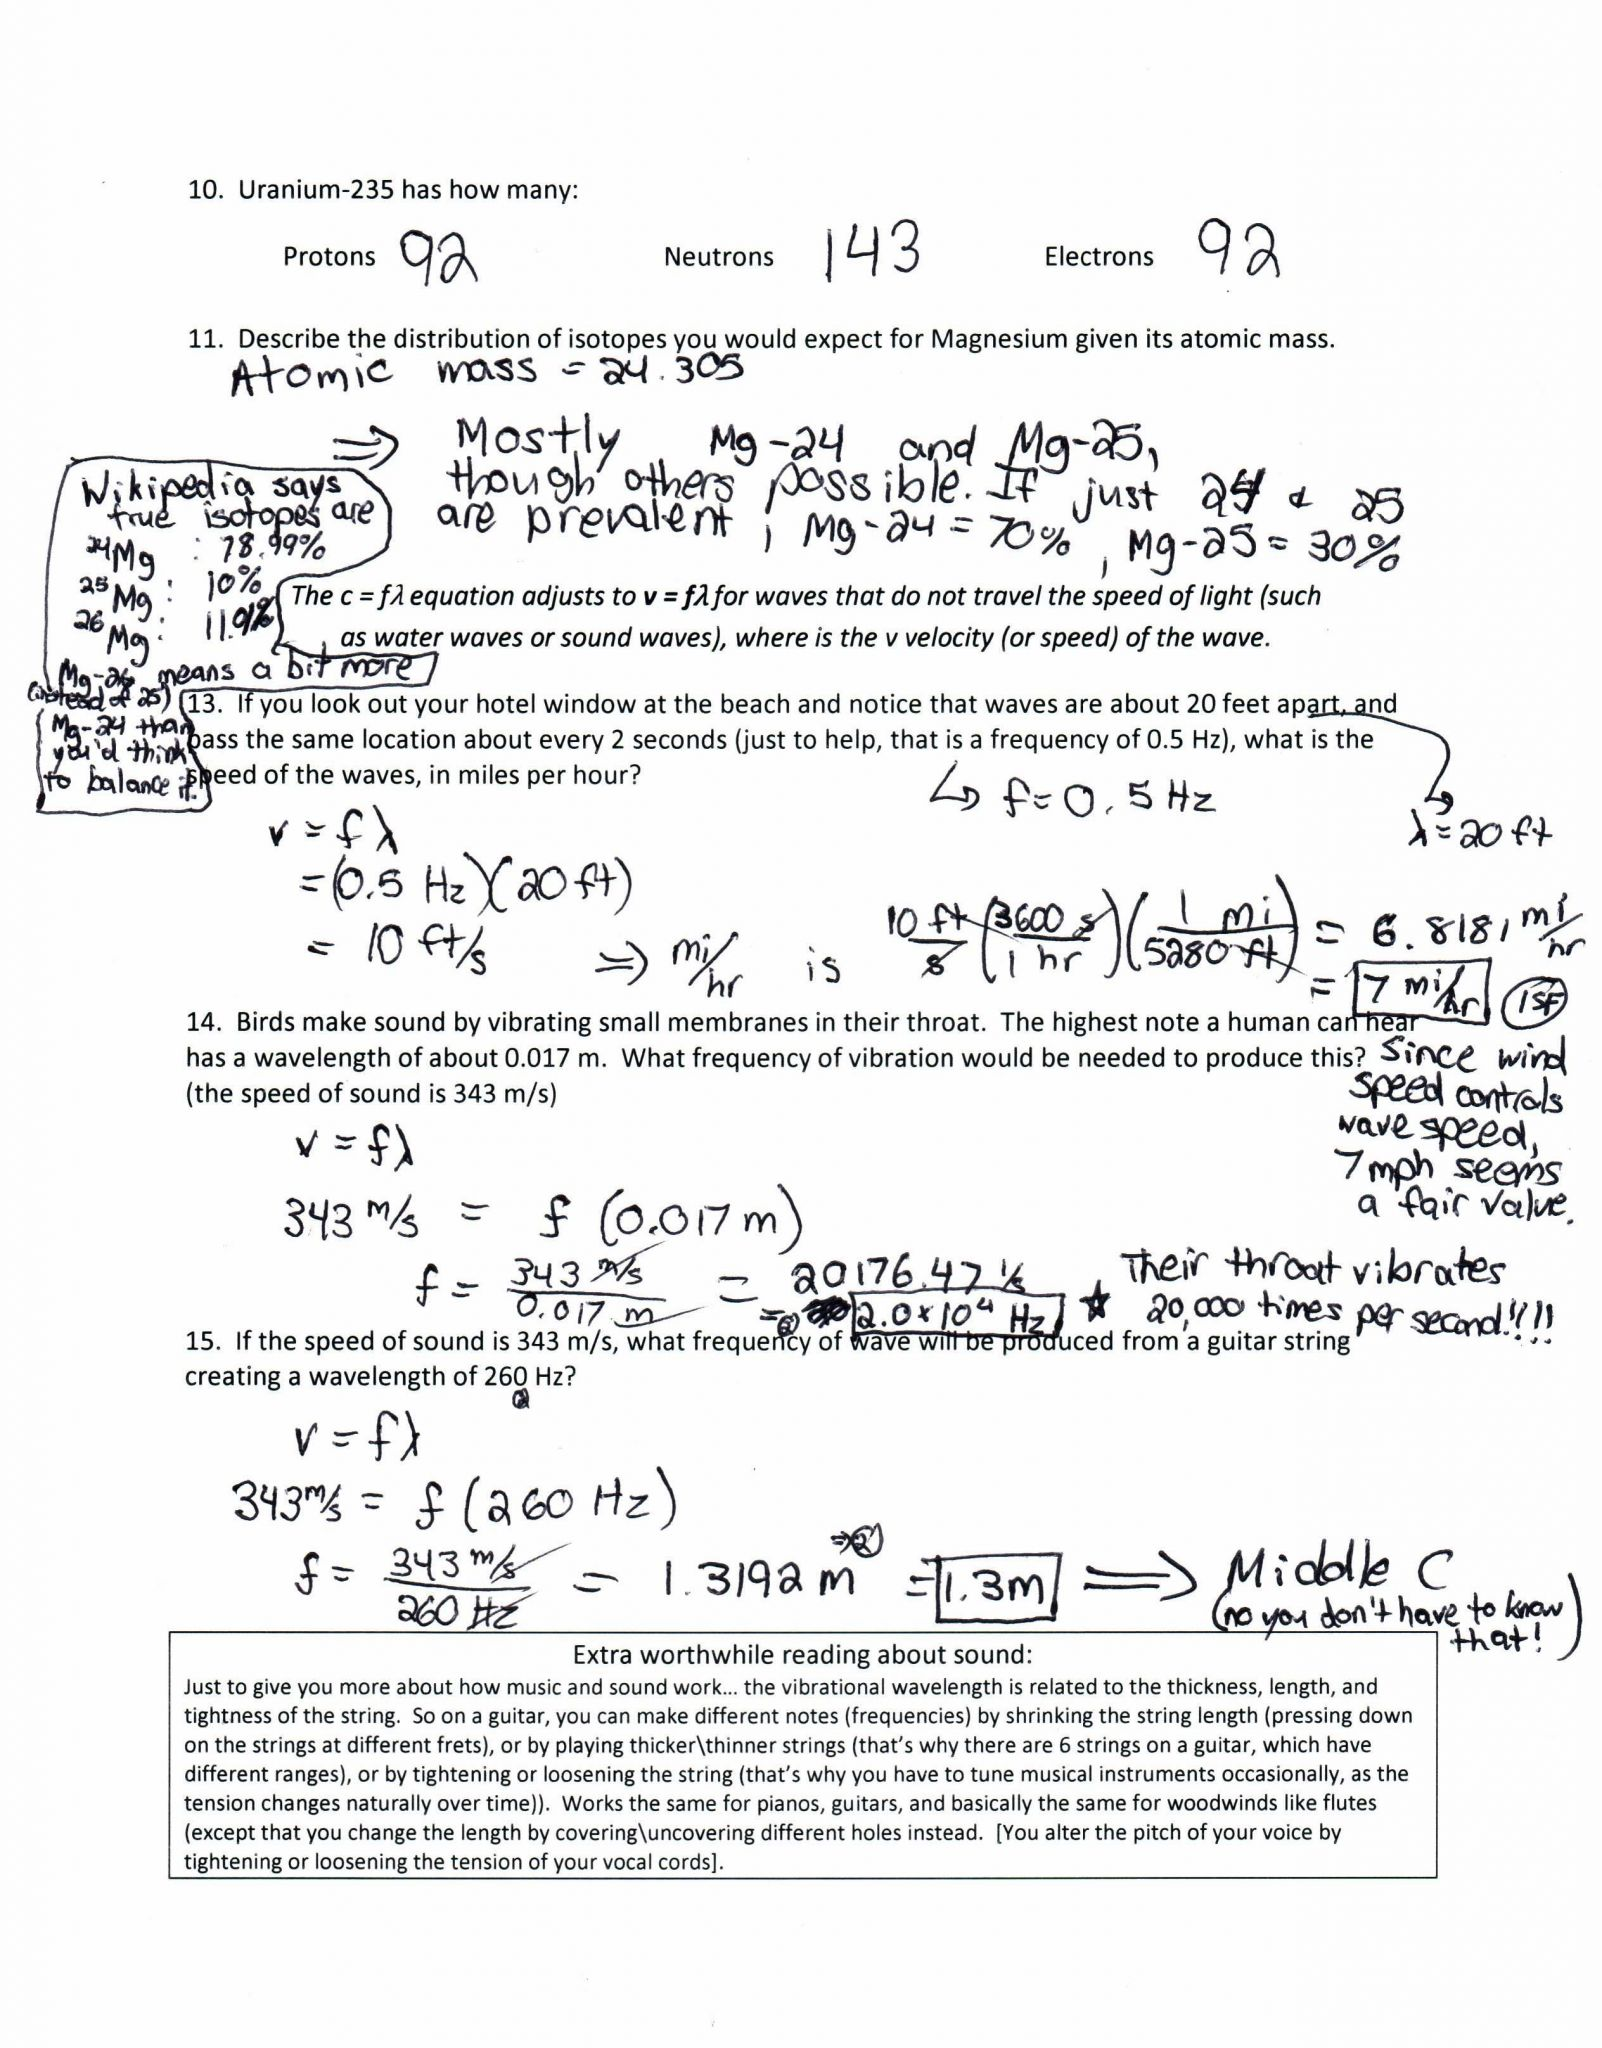 Gas Laws Worksheet 1 Answer Key